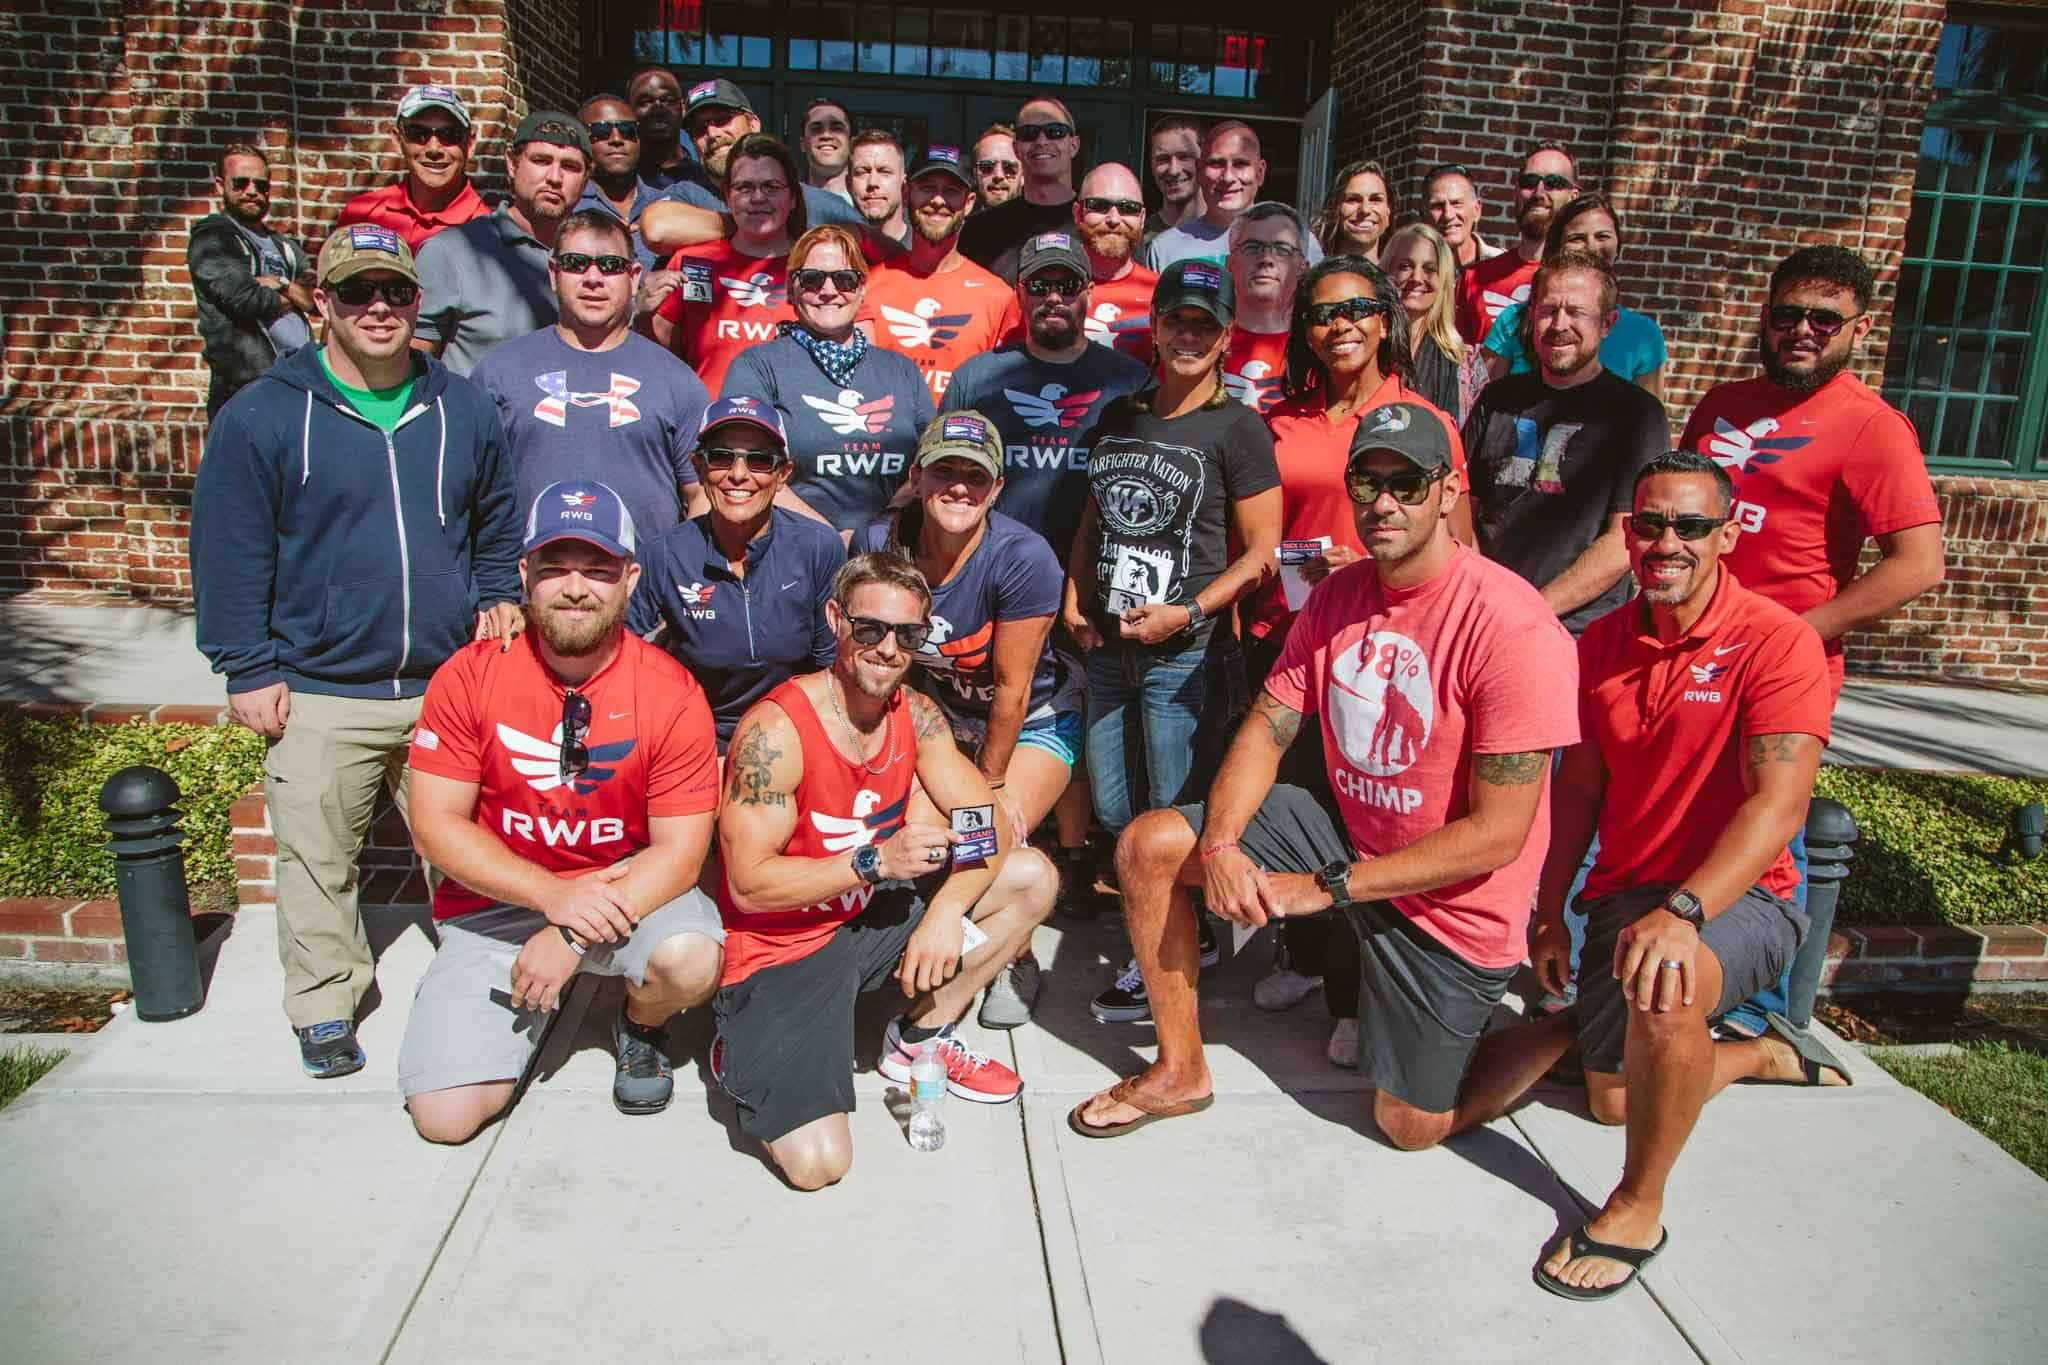 team-rwb-national-goruck-camp-2016-rucking-university-farewell